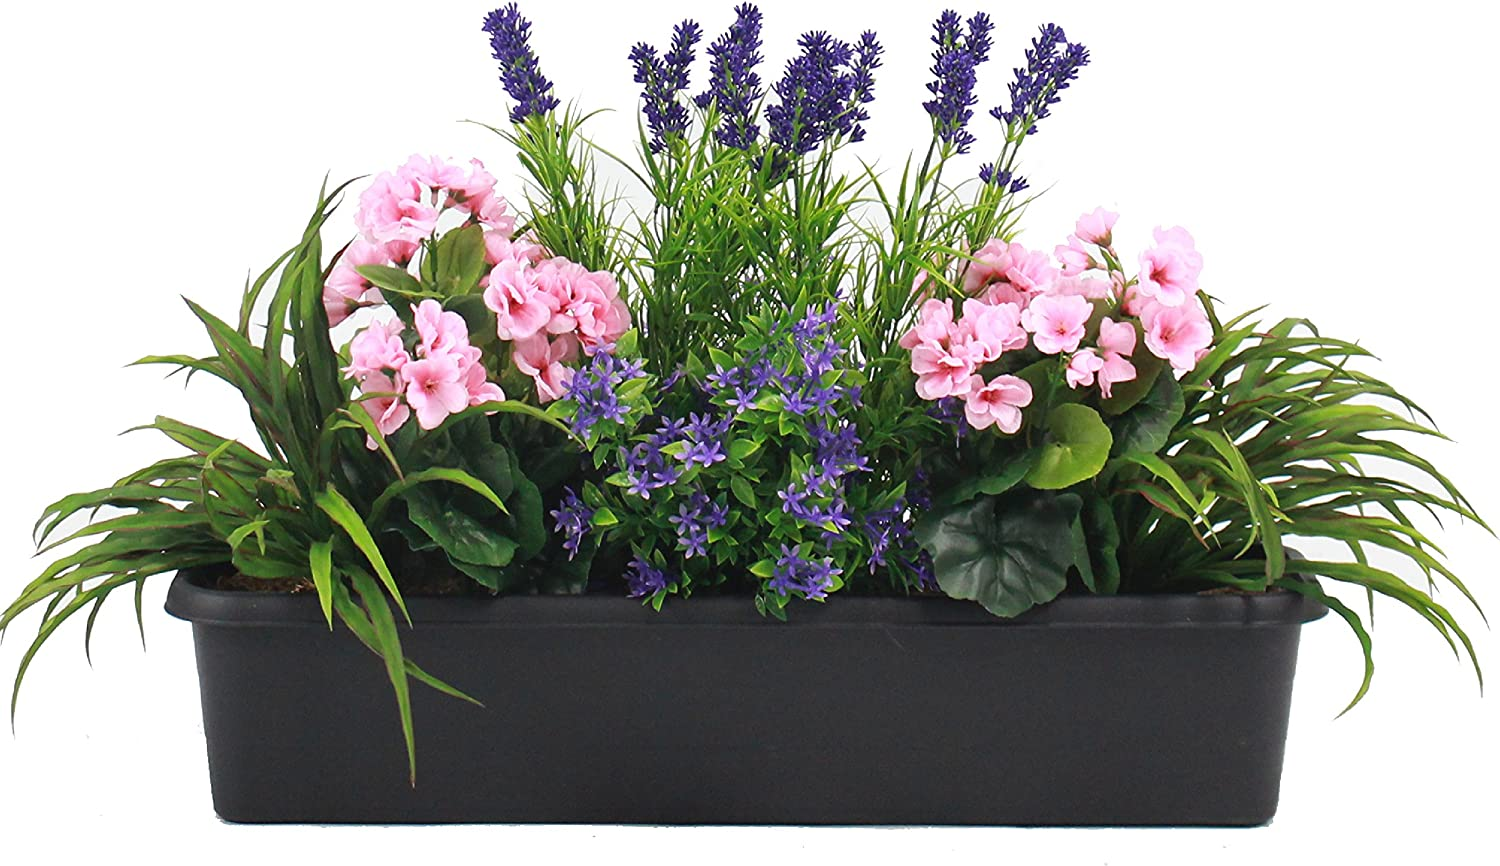 Artificial Mixed Flower Window Box Trough Container With Yucca Geraniums Starflower And Lavender Outdoor And Indoor Use Colourful And Realistic Amazon Co Uk Garden Outdoors